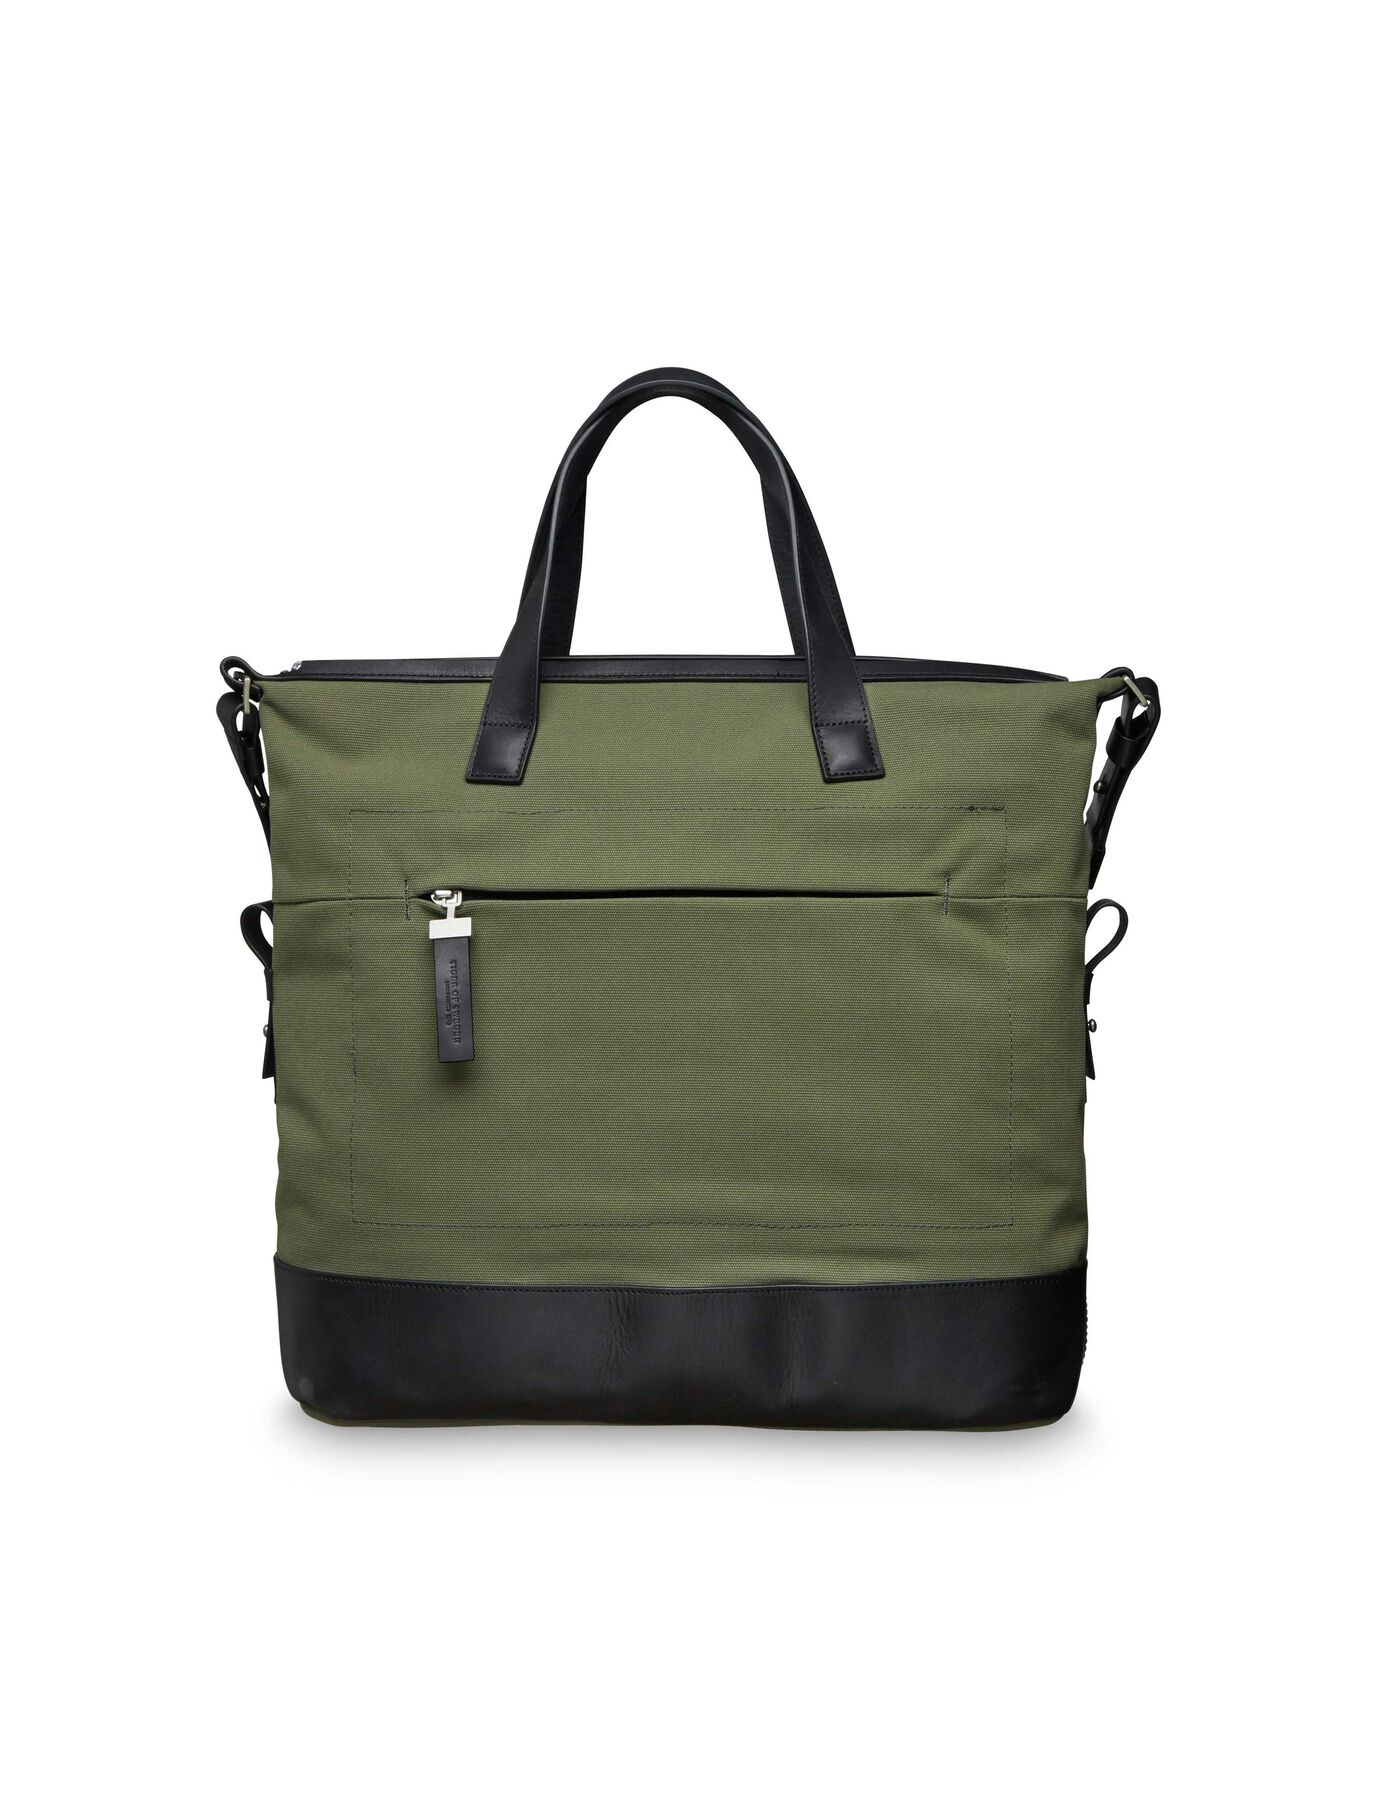 THORNE BAG